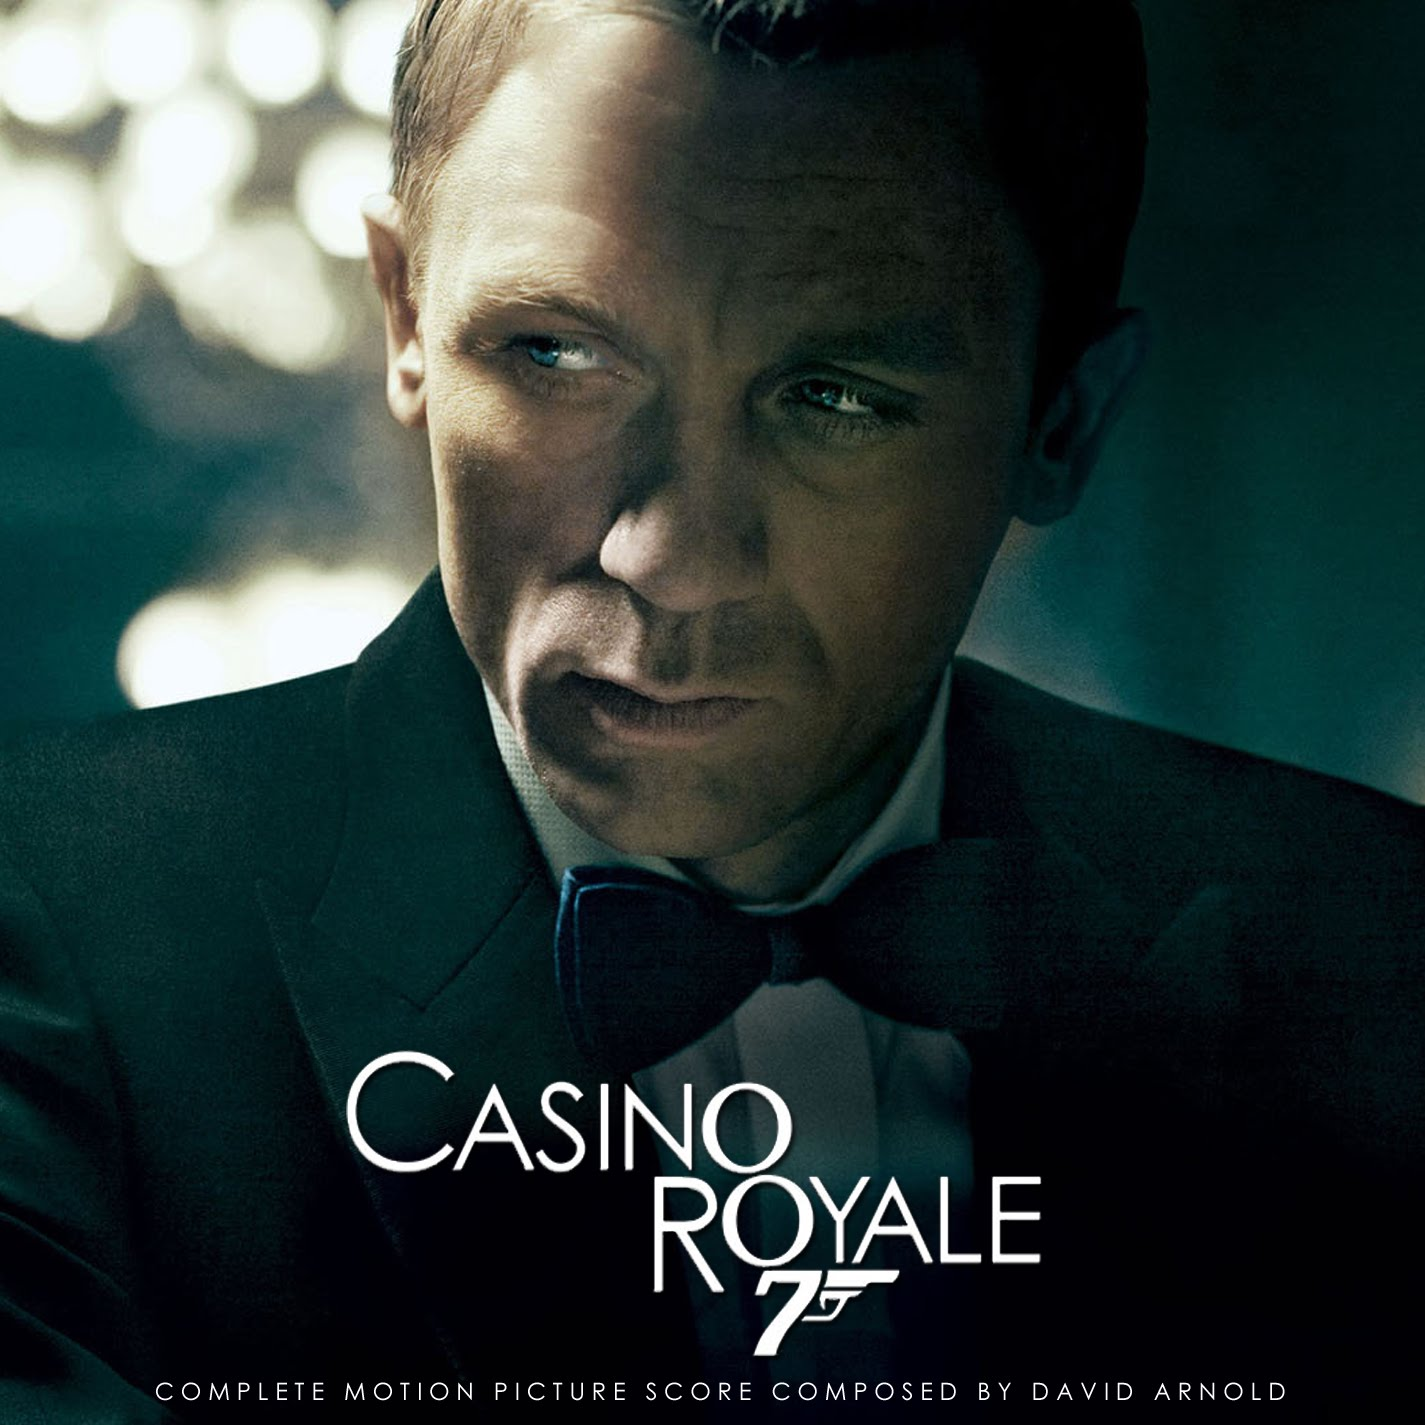 007 casino royale ost